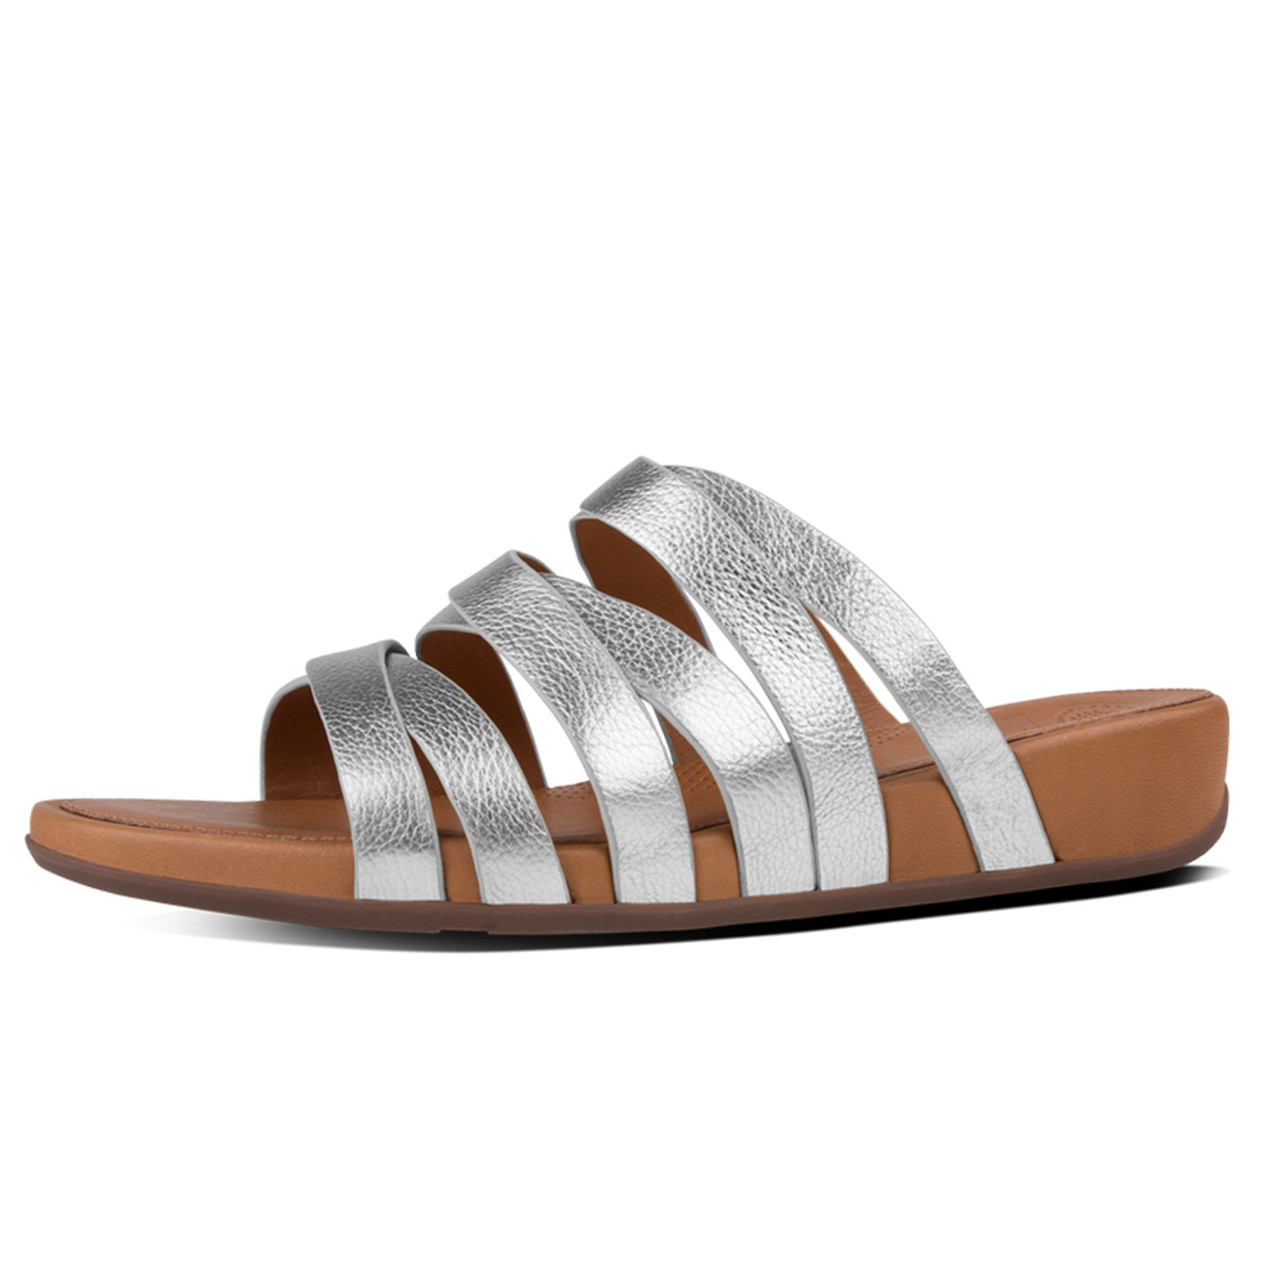 b3d566558 Fitflop Women s Lumy Leather Slide Silver - Shop now   Shoolu.com